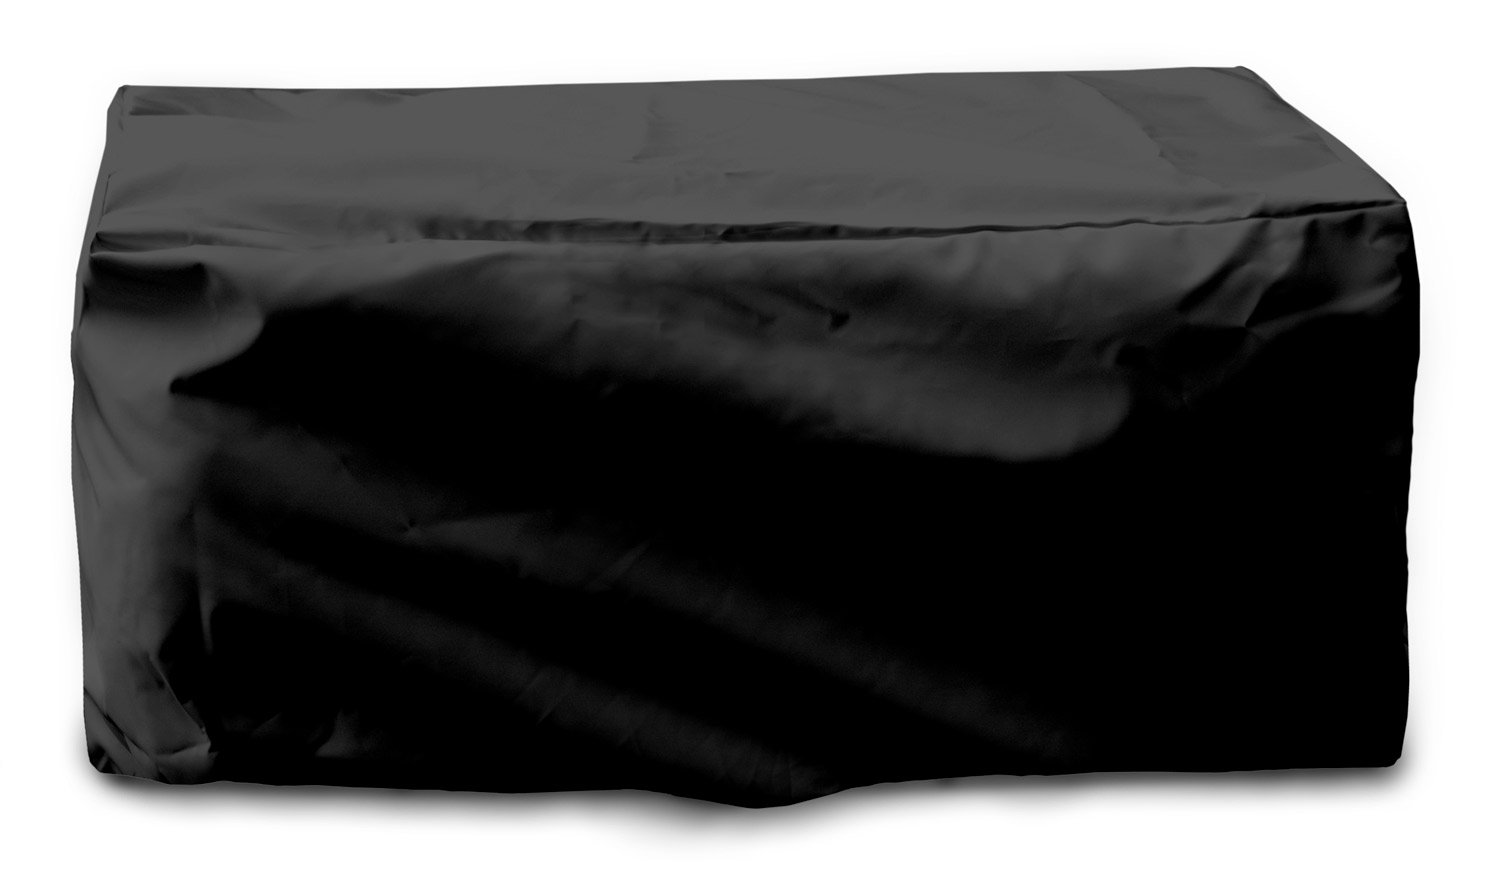 KoverRoos Weathermax 74215 Cushion Storage Chest Cover, 54-Inch Length by 33-Inch Width by 28-Inch Height, Black